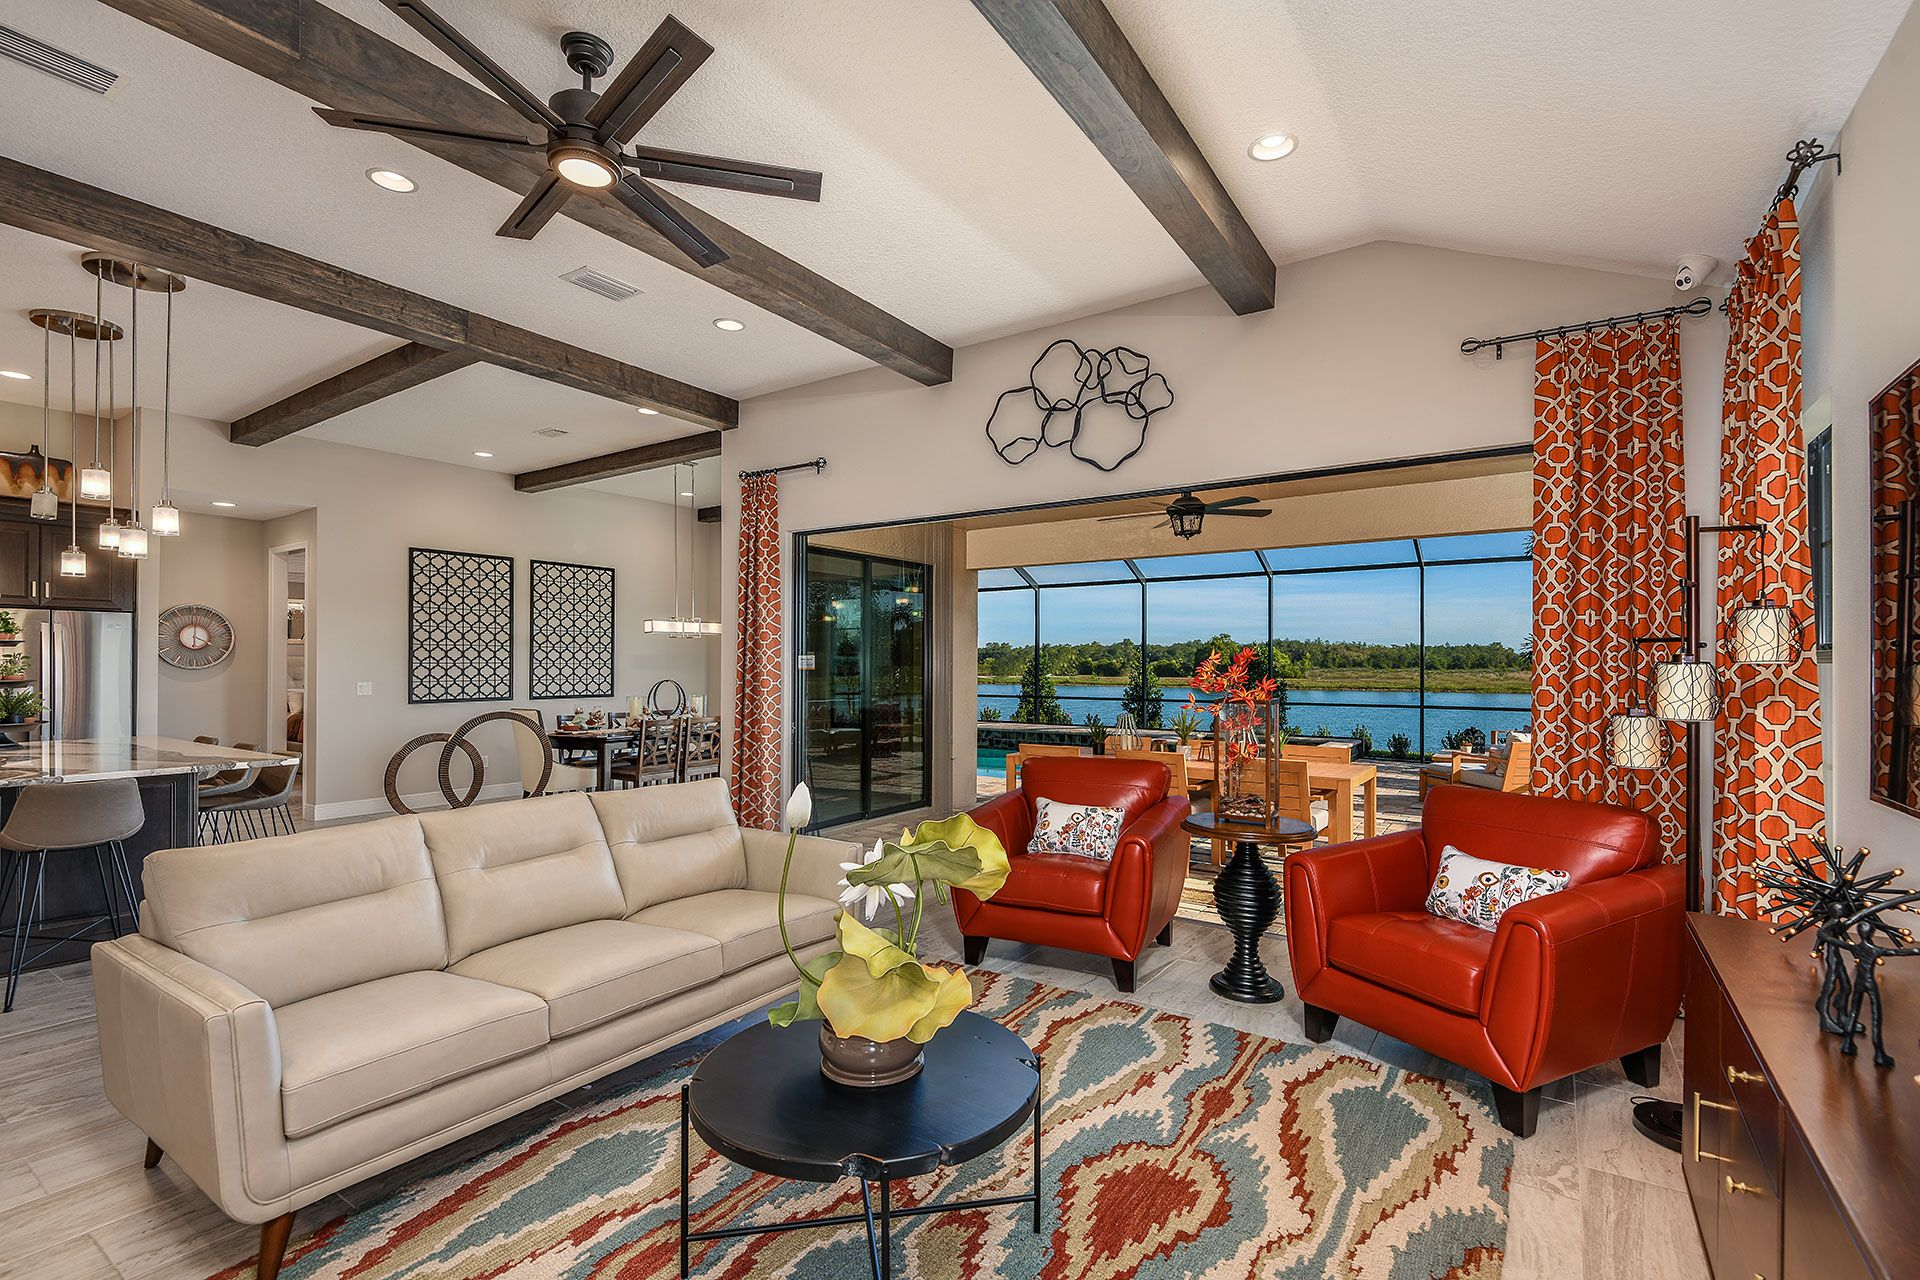 Living Area featured in the Swann IV By Homes by WestBay in Tampa-St. Petersburg, FL